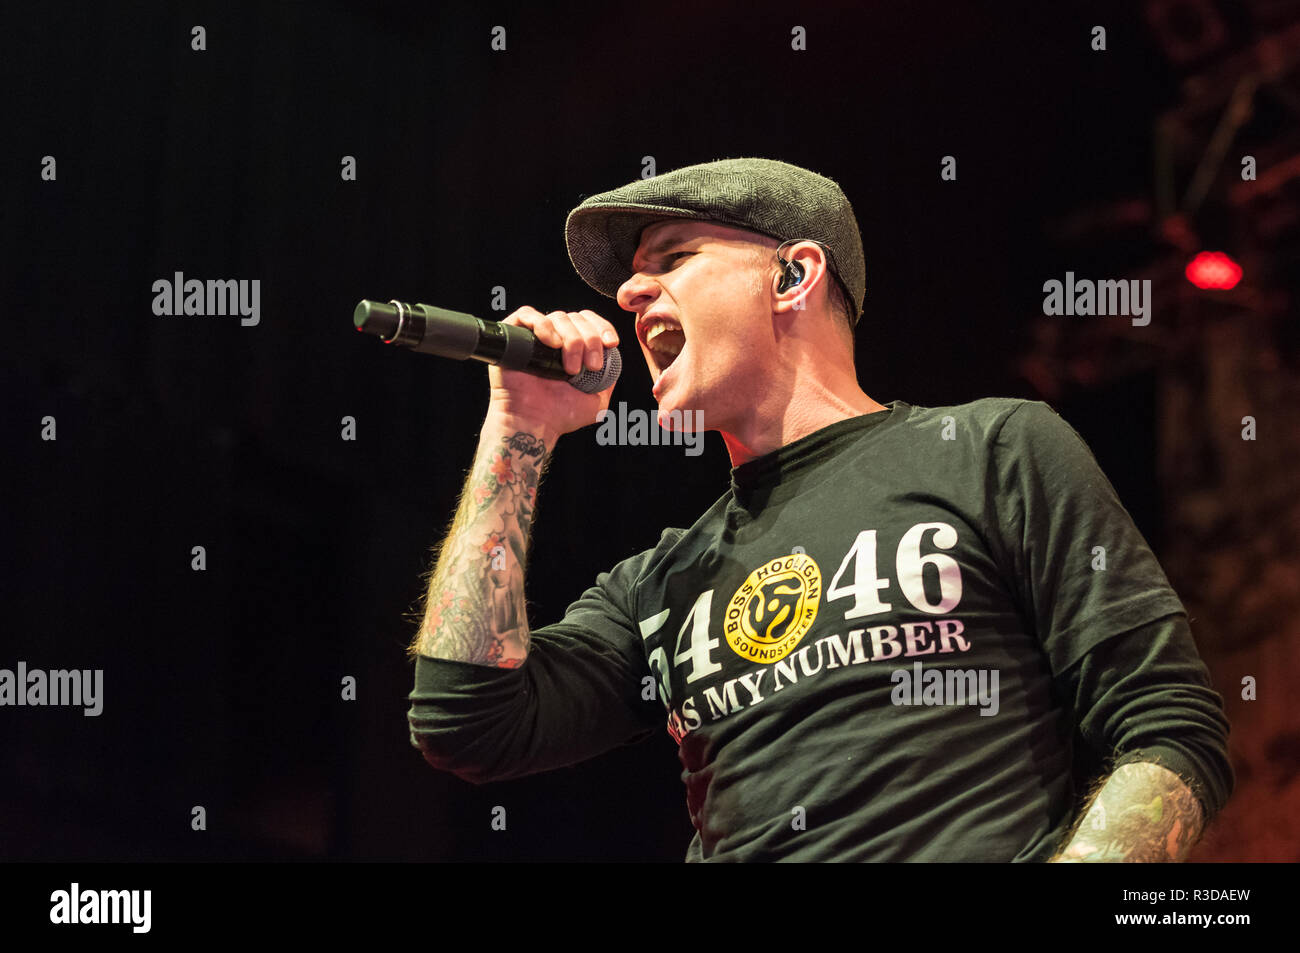 All Barr, lead singer for the Dropkick Murphys, singing for the soundcheck before the 2017 St Patrick's Day show. - Stock Image